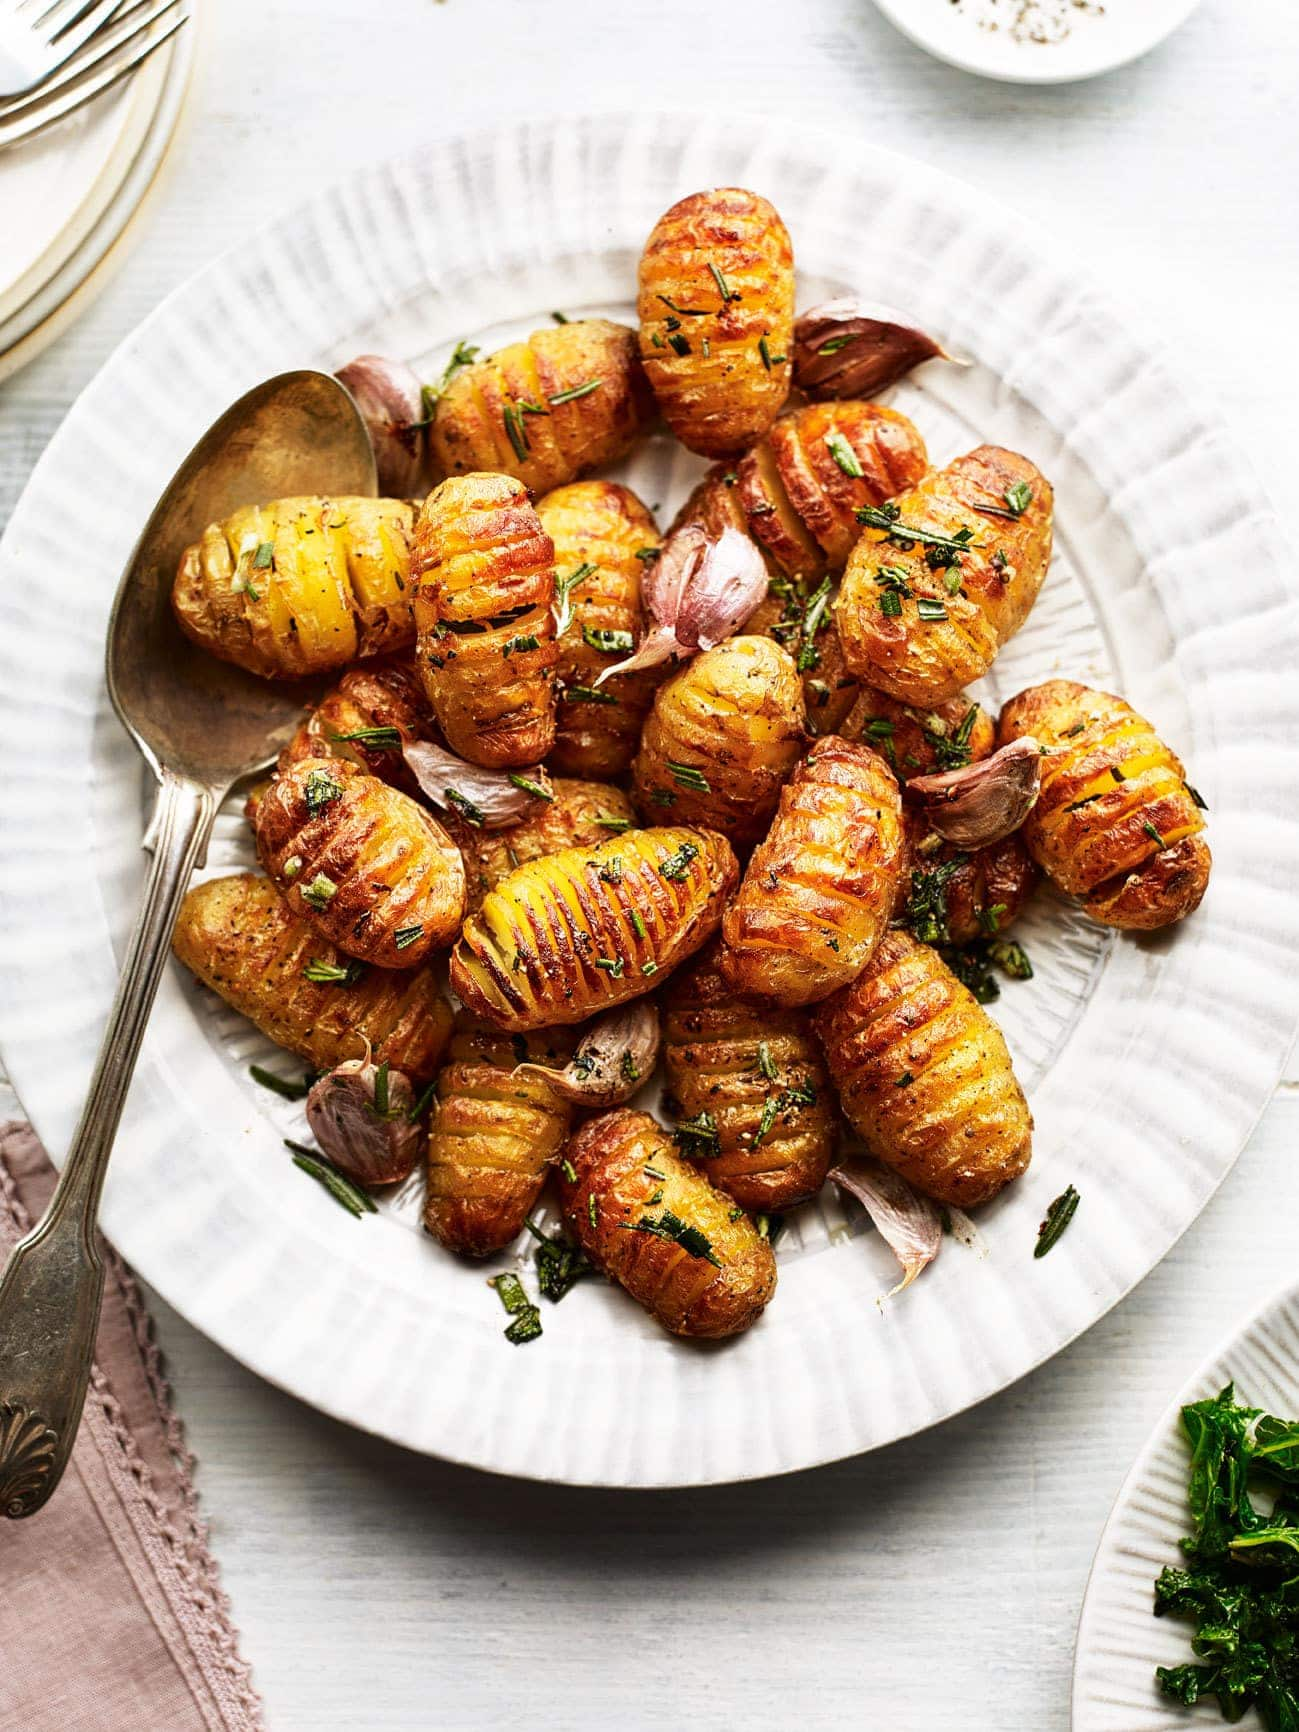 Mini Hasselback Potatoes with Rosemary and Garlic 1